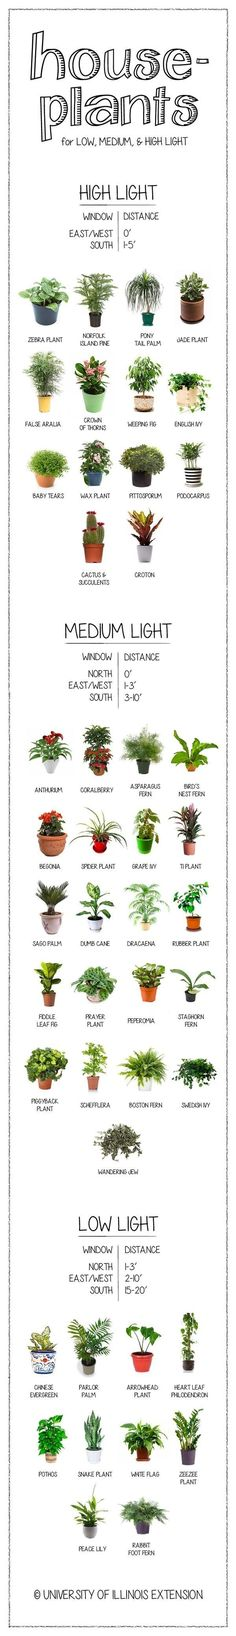 How much light does your houseplant need? Find out on this handy chart. | 23 Diagrams That Make Gardening So Much Easier